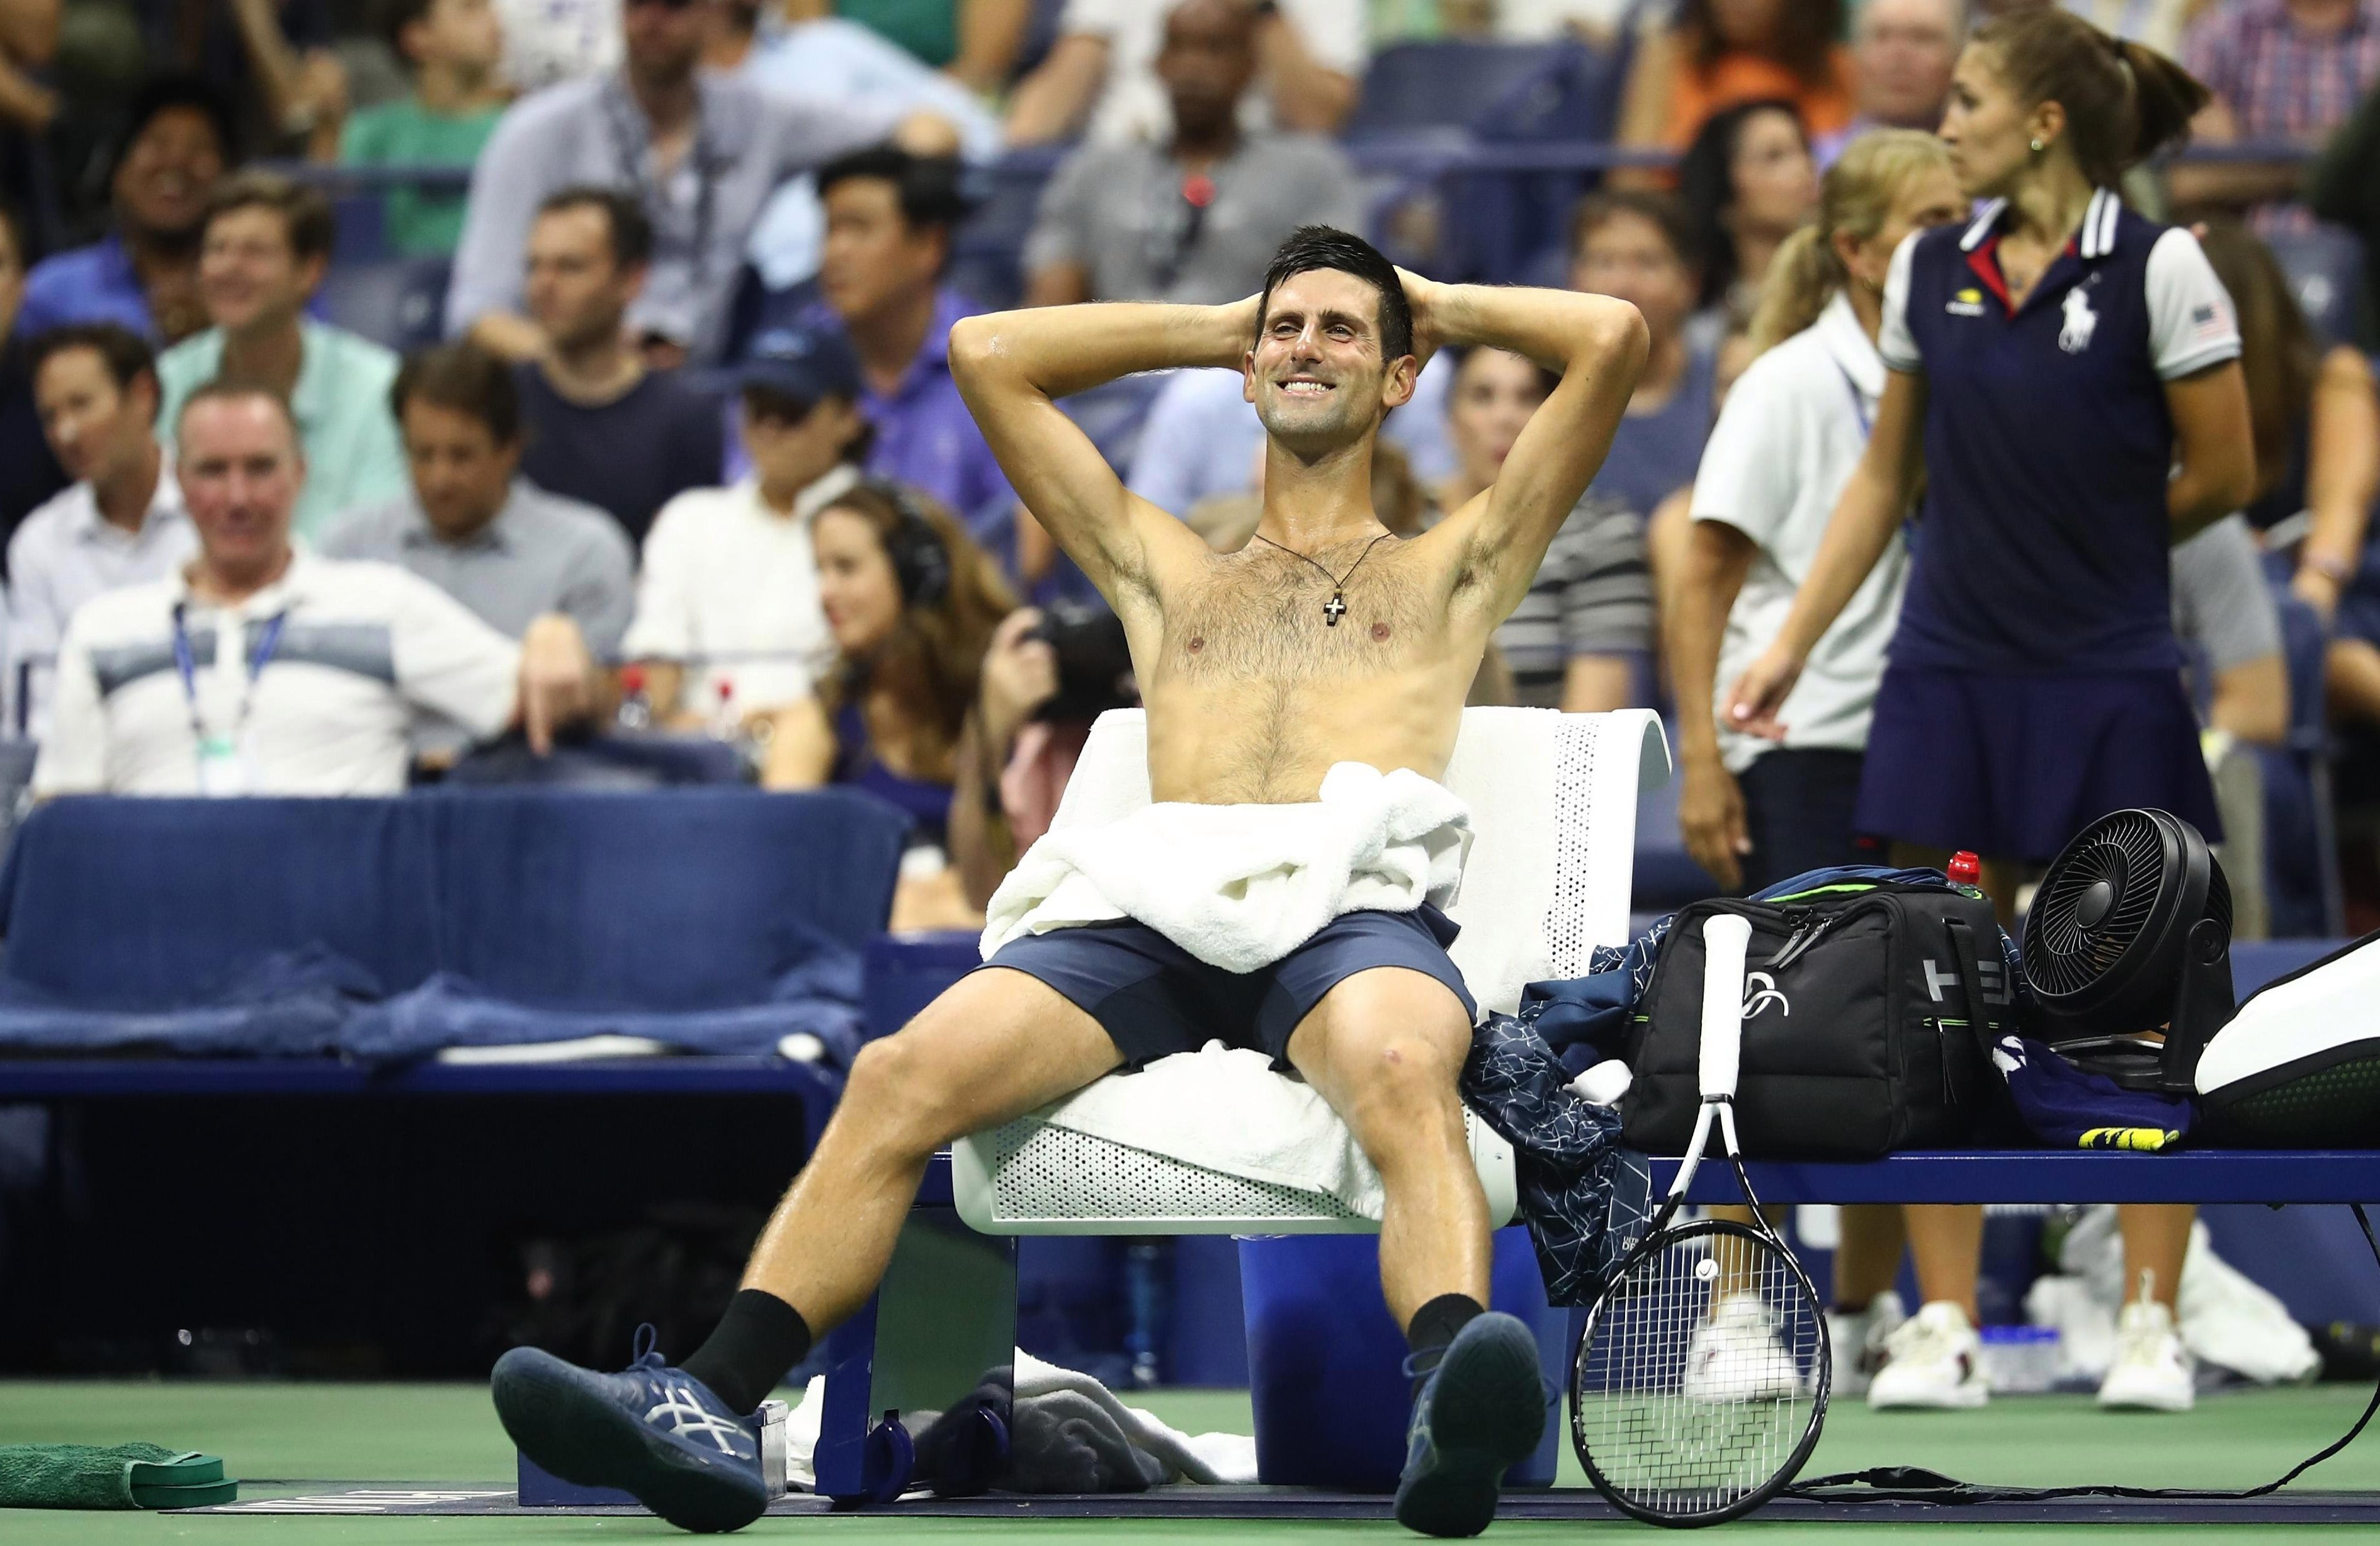 Novak Djokovic rests with his shirt off to combat the heat and humidity at Flushing Meadows